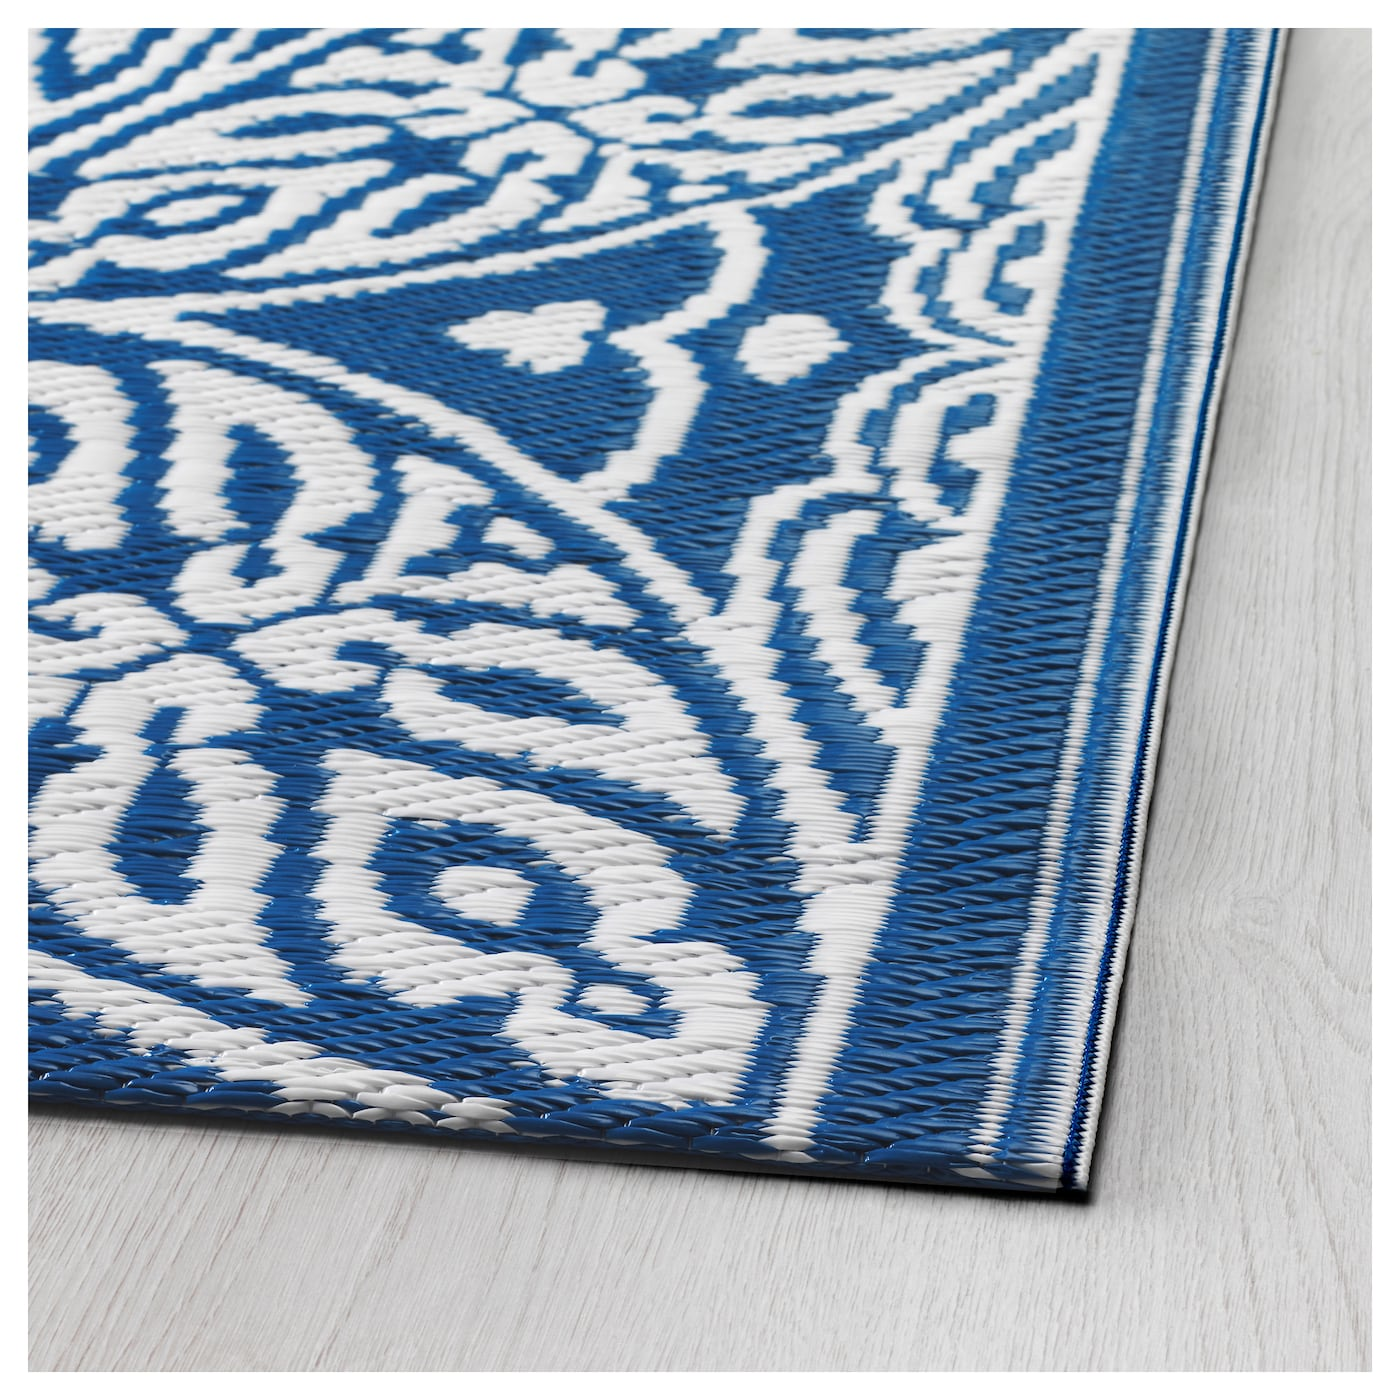 SOMMAR 2016 Rug flatwoven In outdoor blue white 75x200 cm